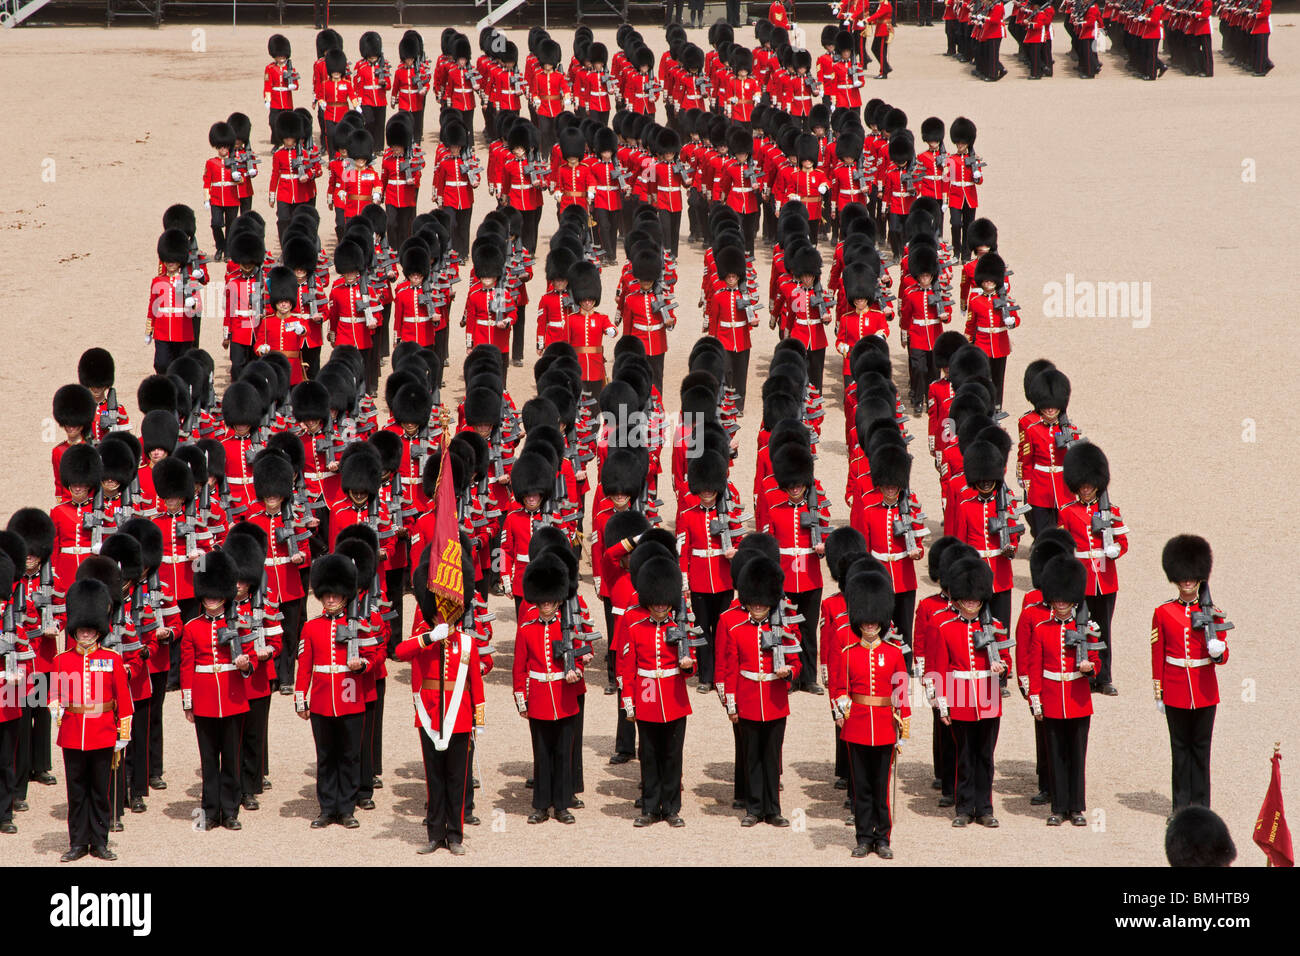 The Queen's Birthday Parade, also known as the Trooping of the Colour, held annually at Horse Guards Whitehall, - Stock Image